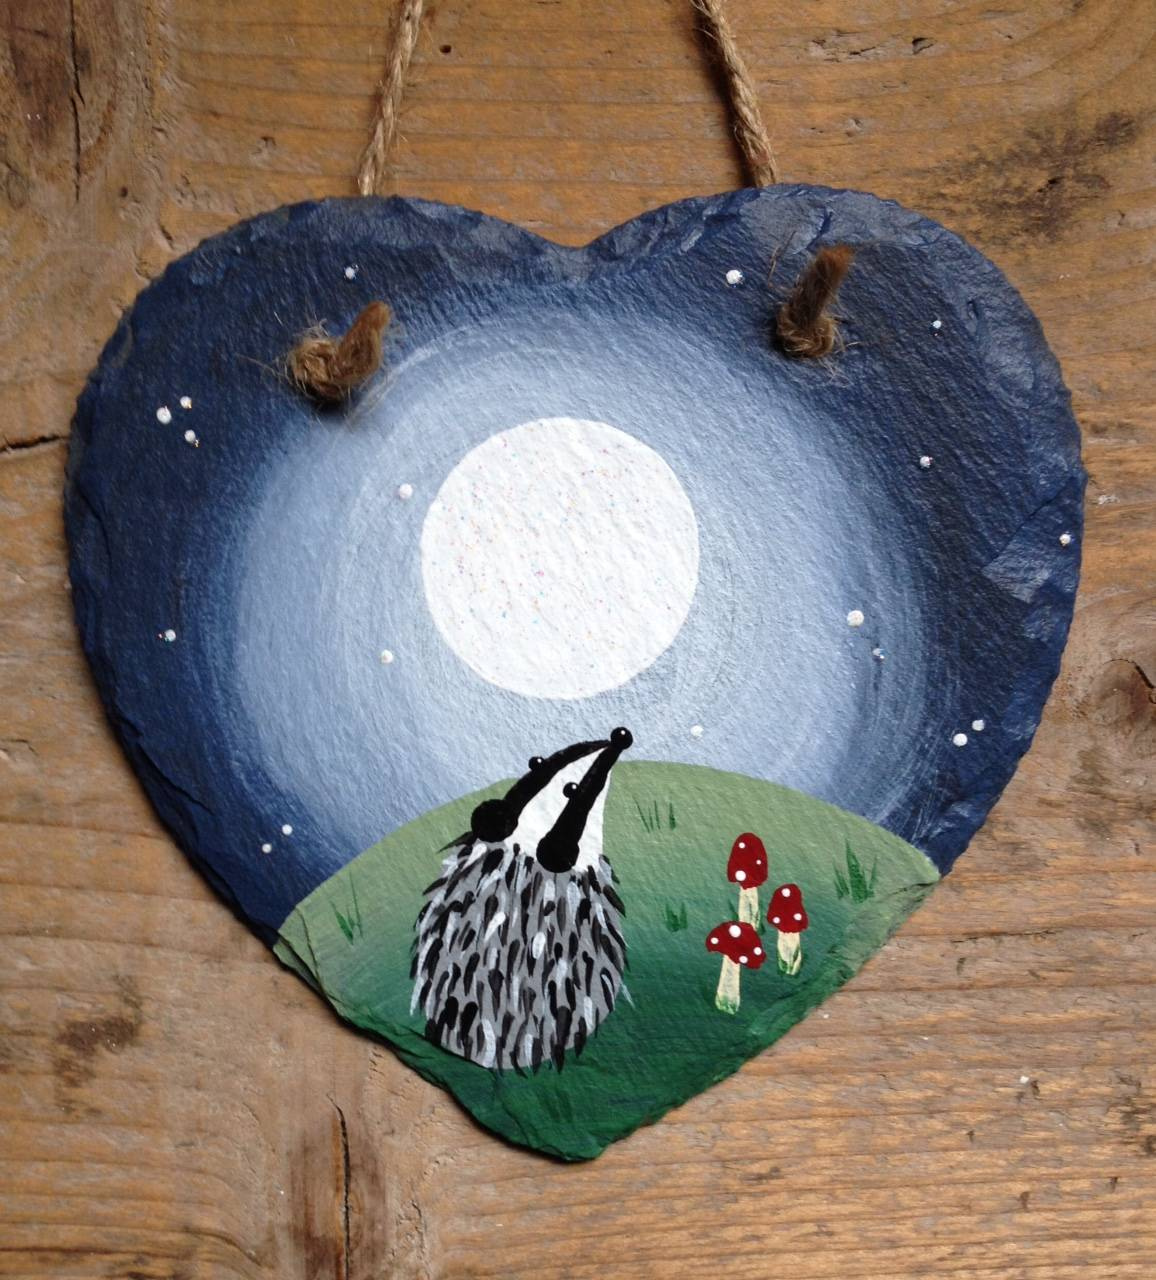 Small slate with badger